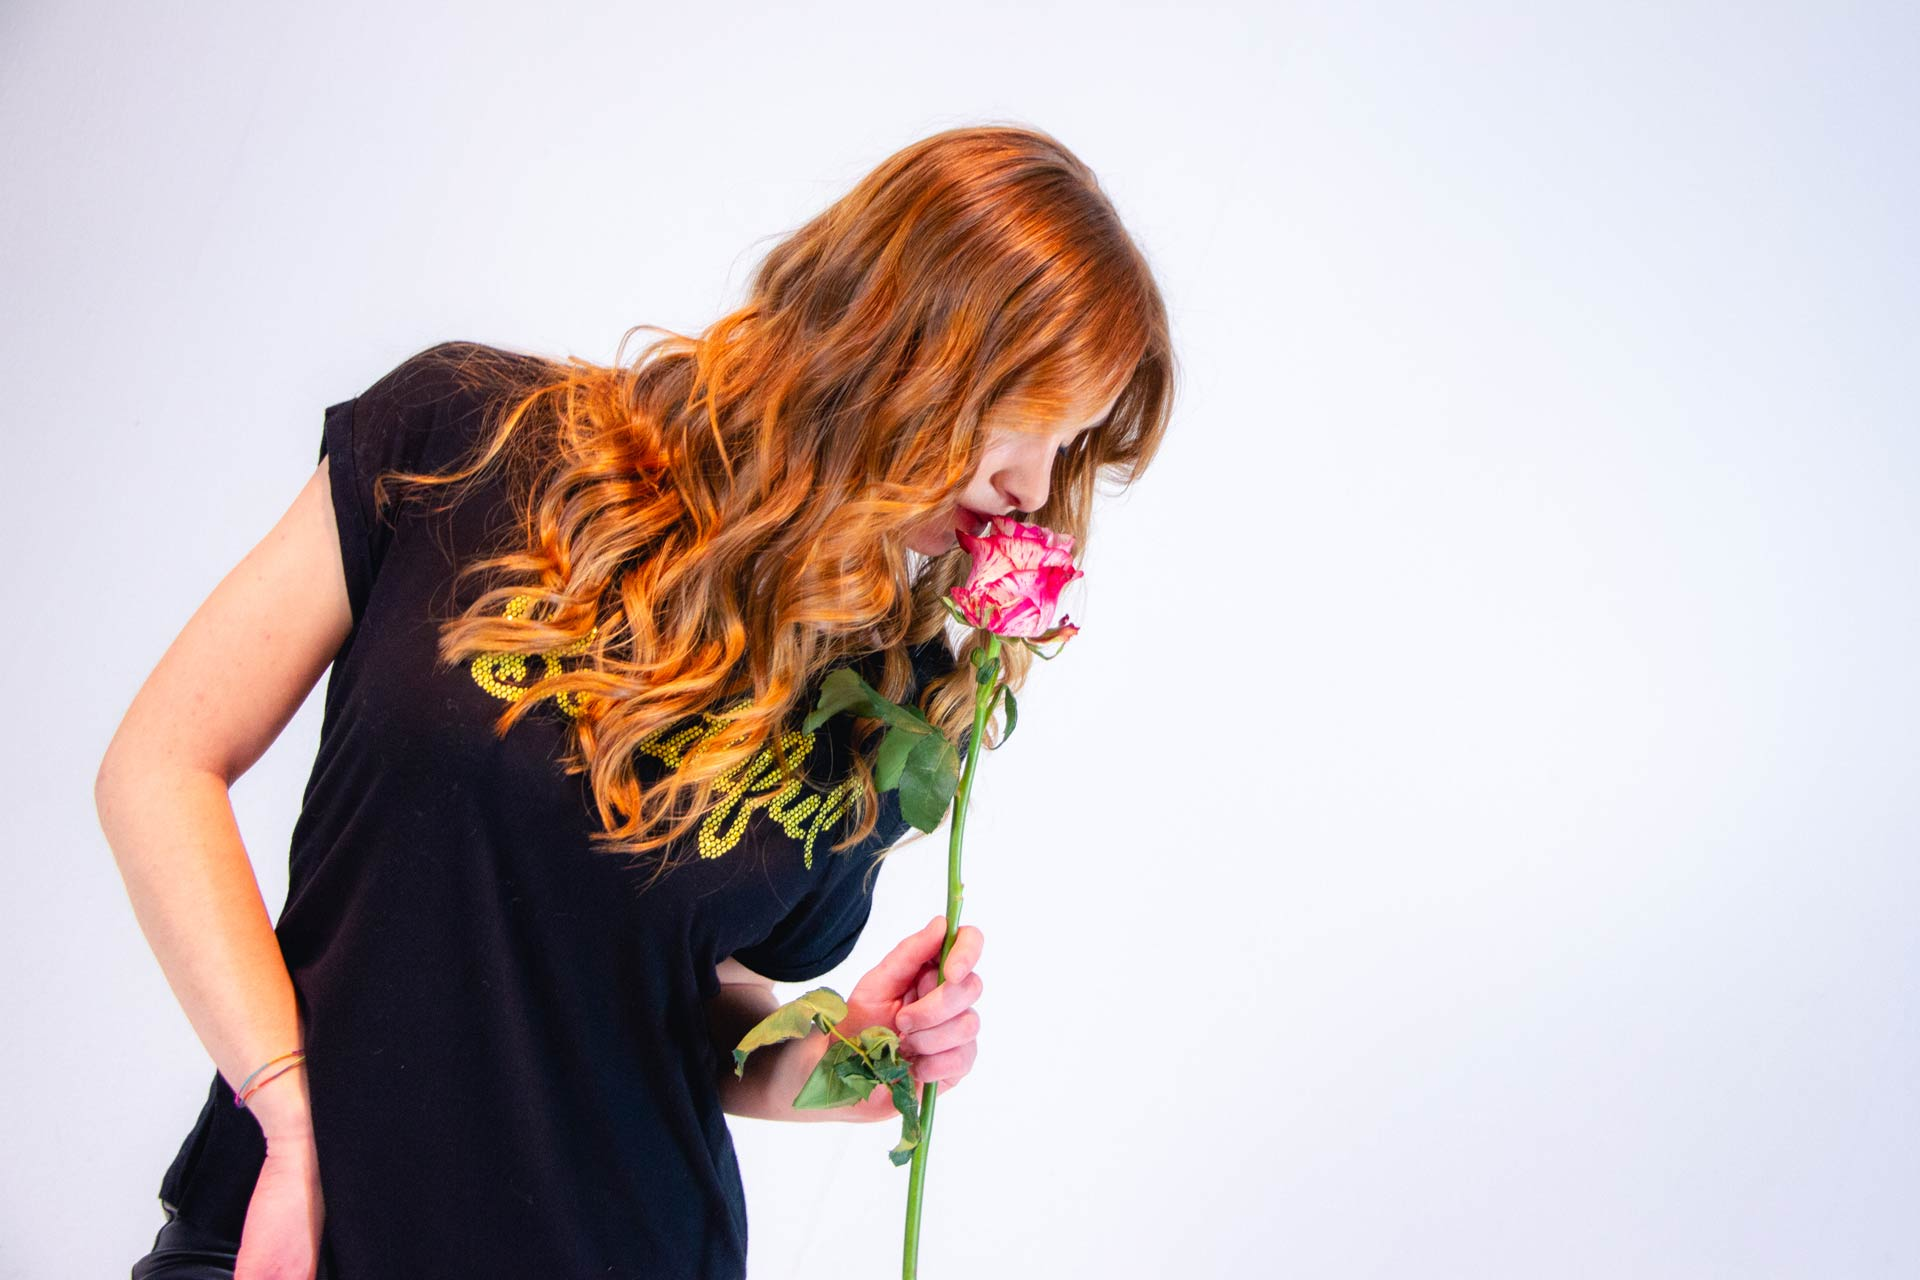 Capelli color corallo mossi | Shooting Flower | Danys Fashion Carpi